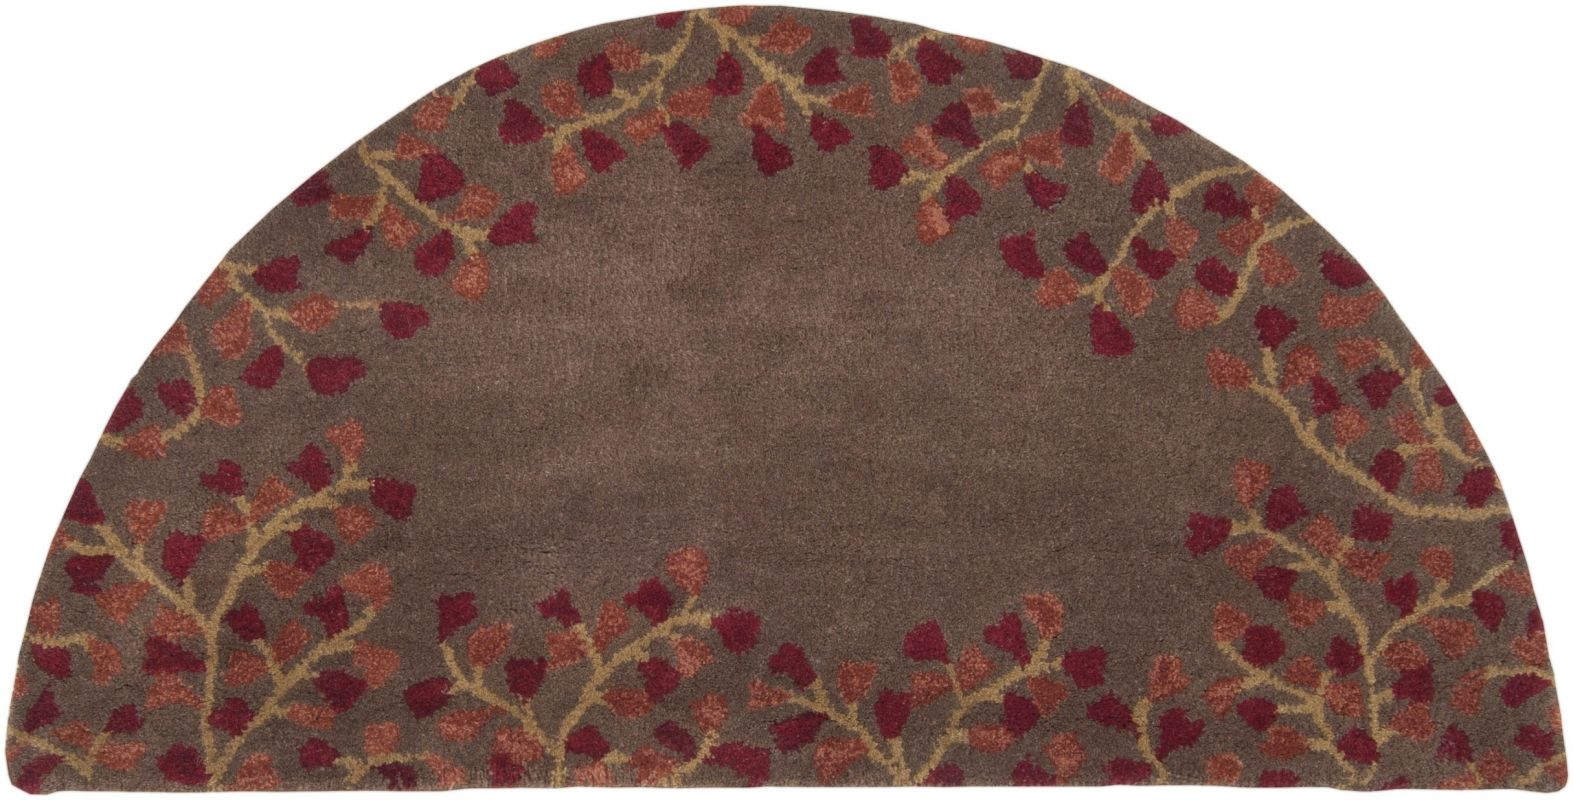 Surya ATH-5003 Athena Hand Tufted Wool Rug Red 12 x 15 Home Decor Rugs